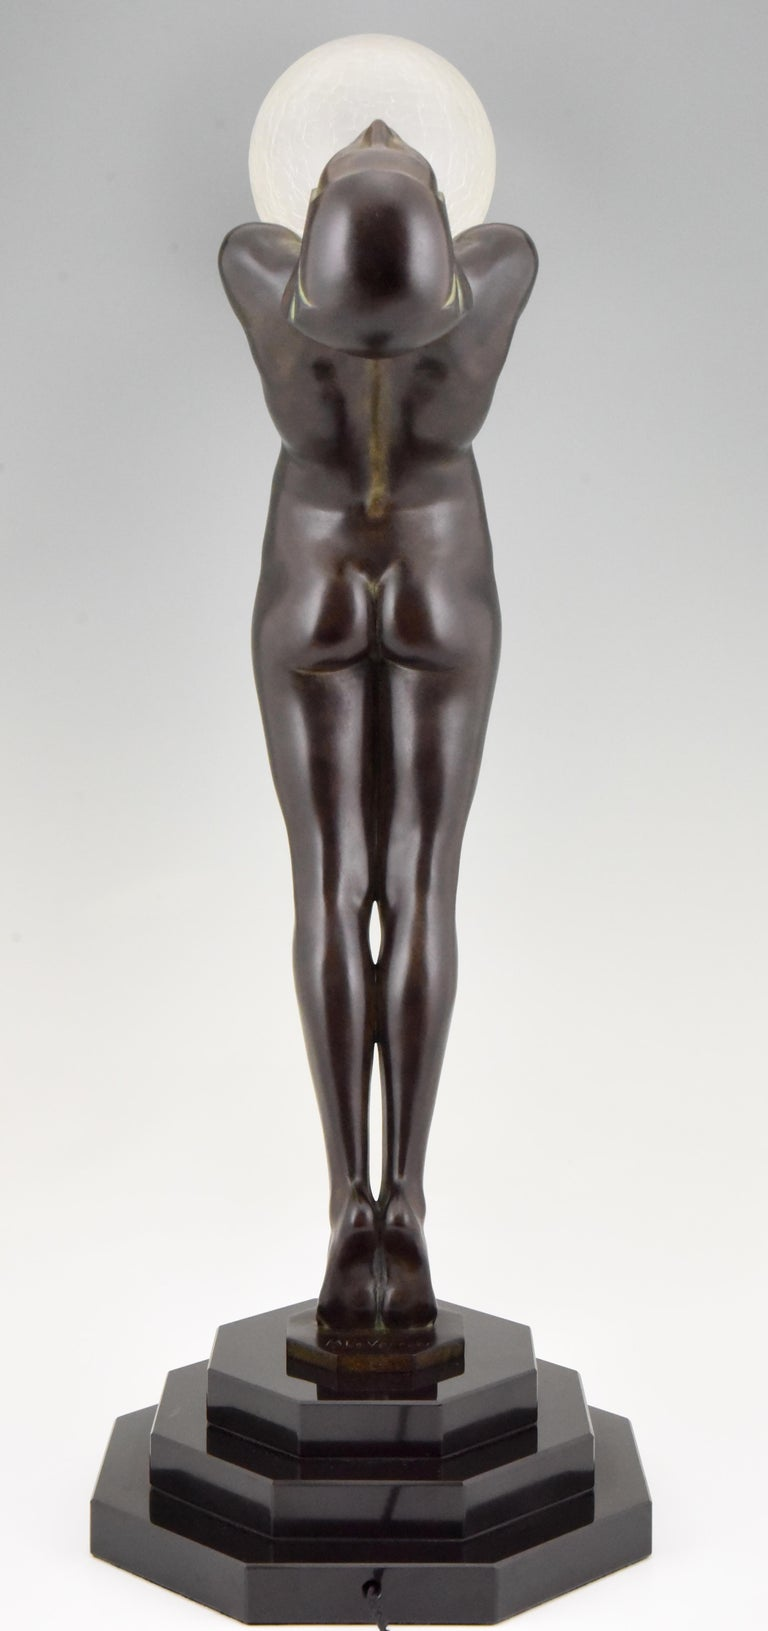 Art Deco Lamp Clarté Nude with Globe by Max Le Verrier For Sale 1